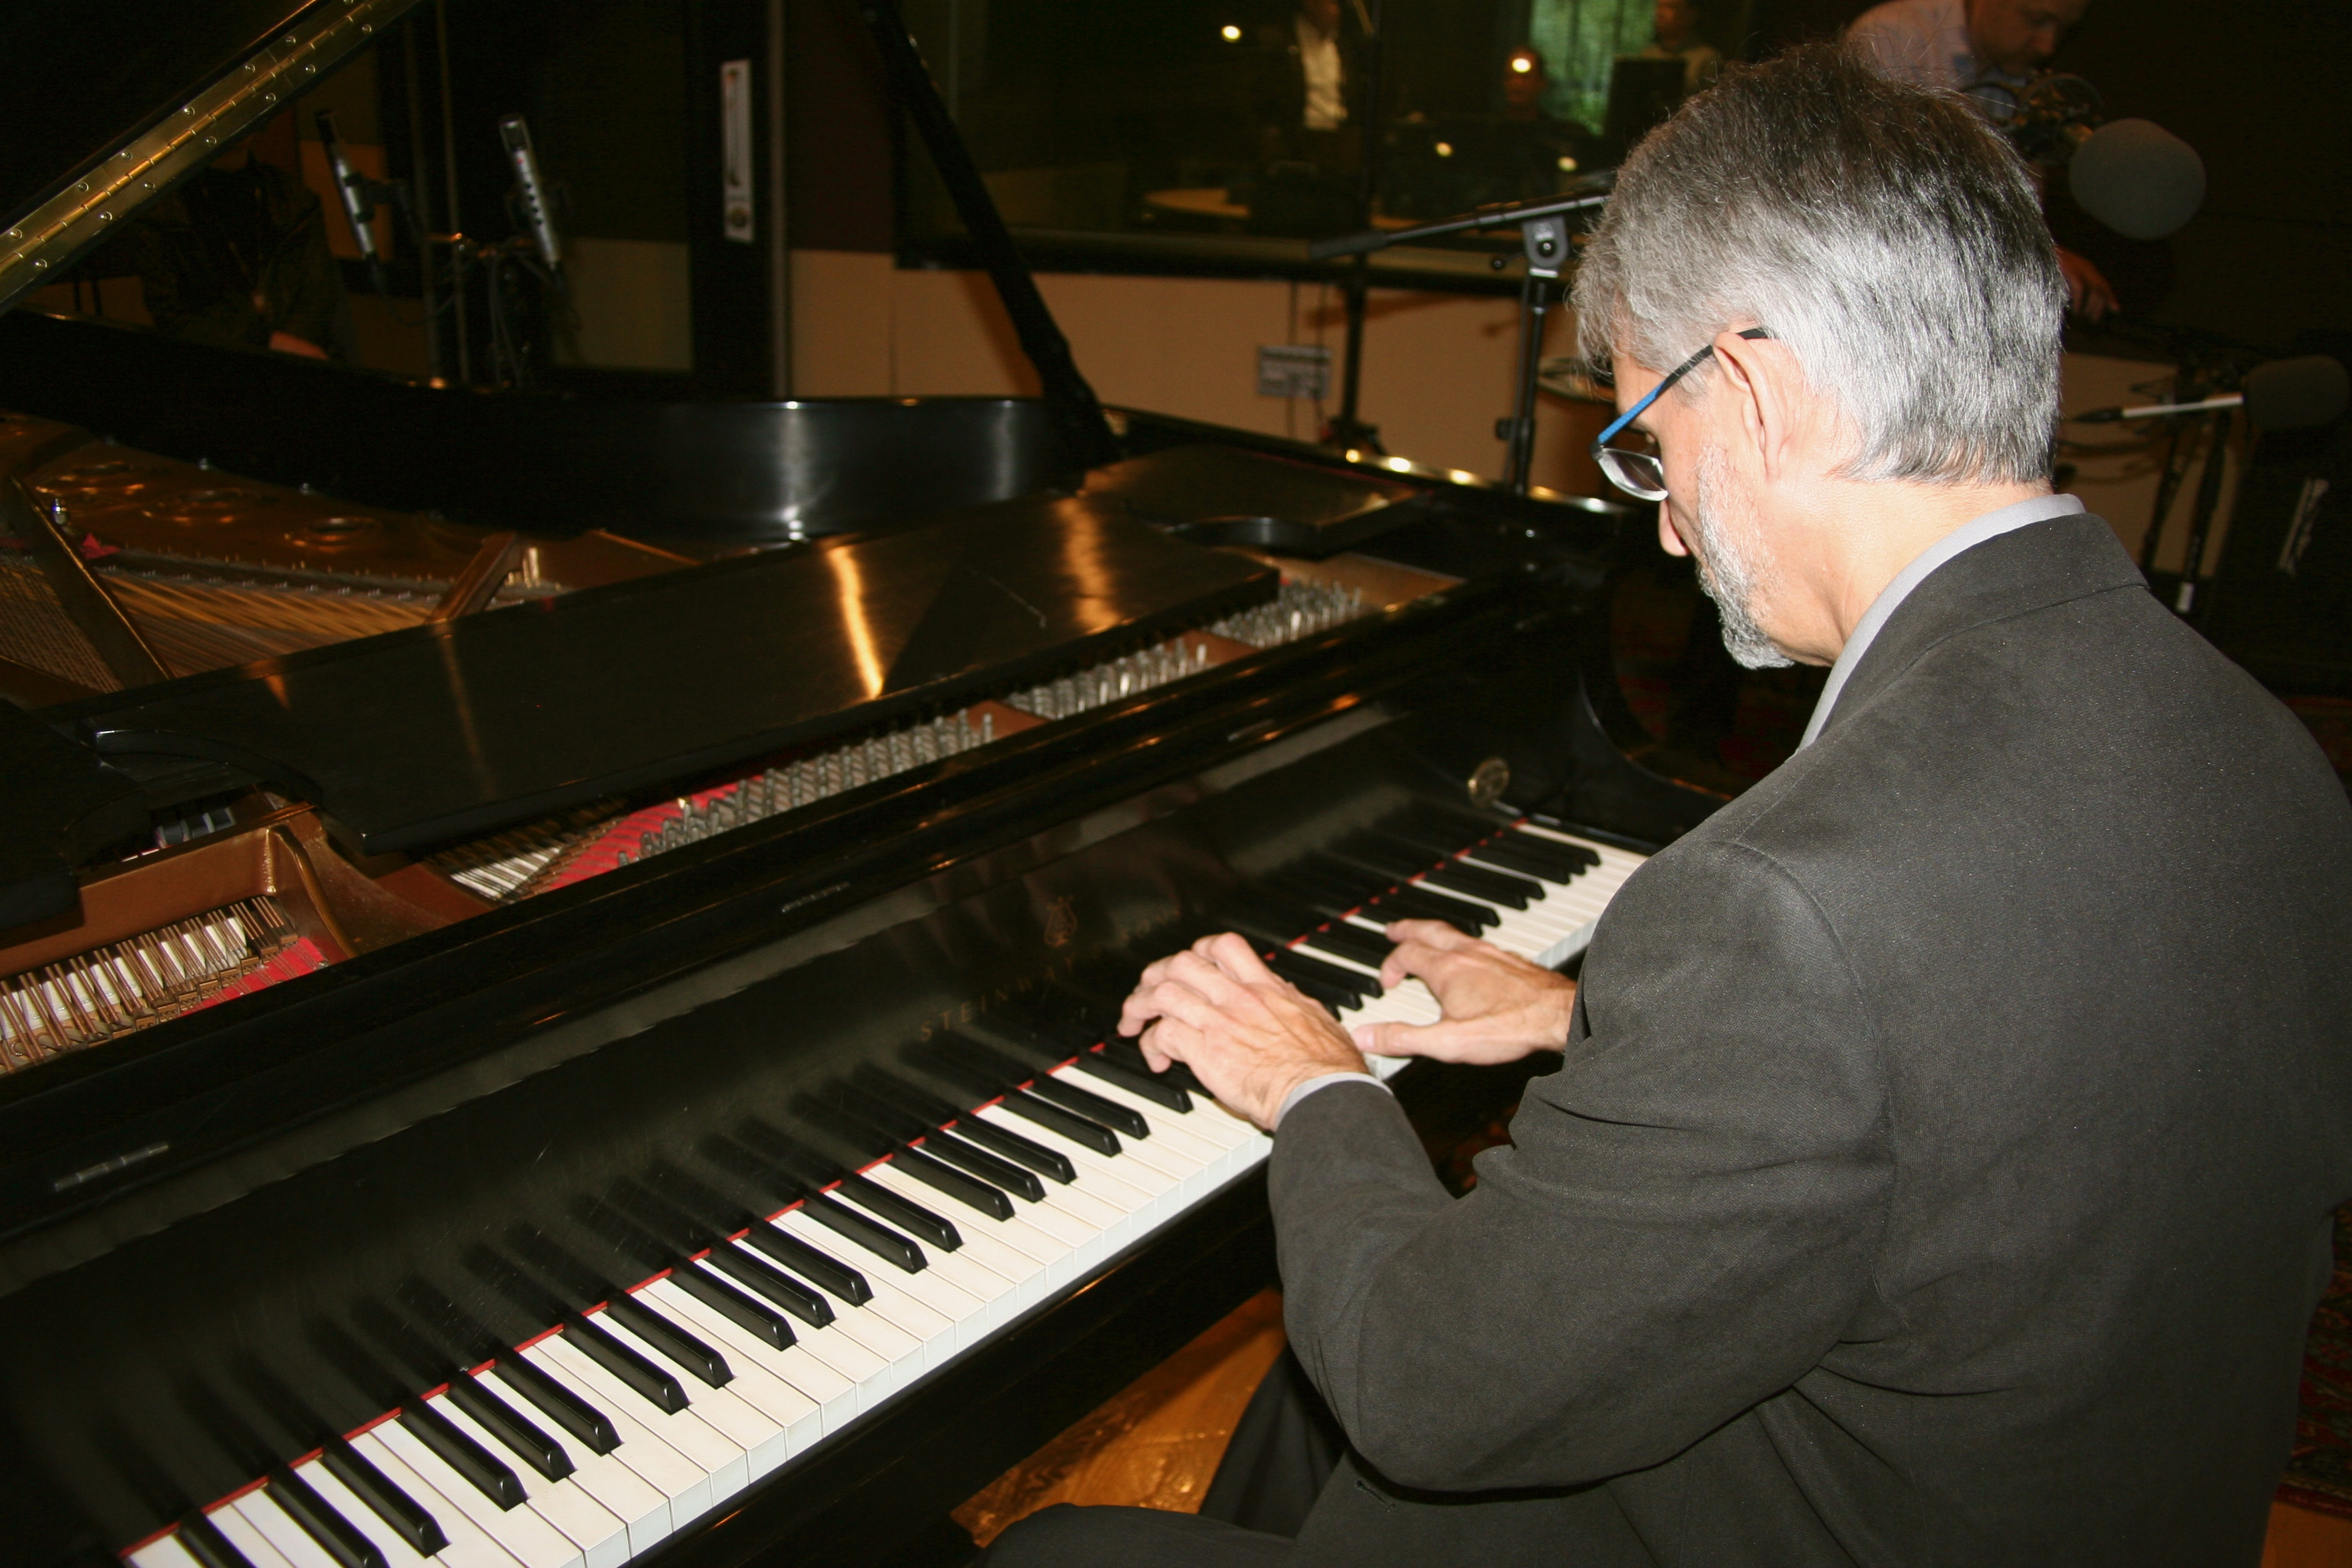 Recording on Van Cliburn's PianoReco